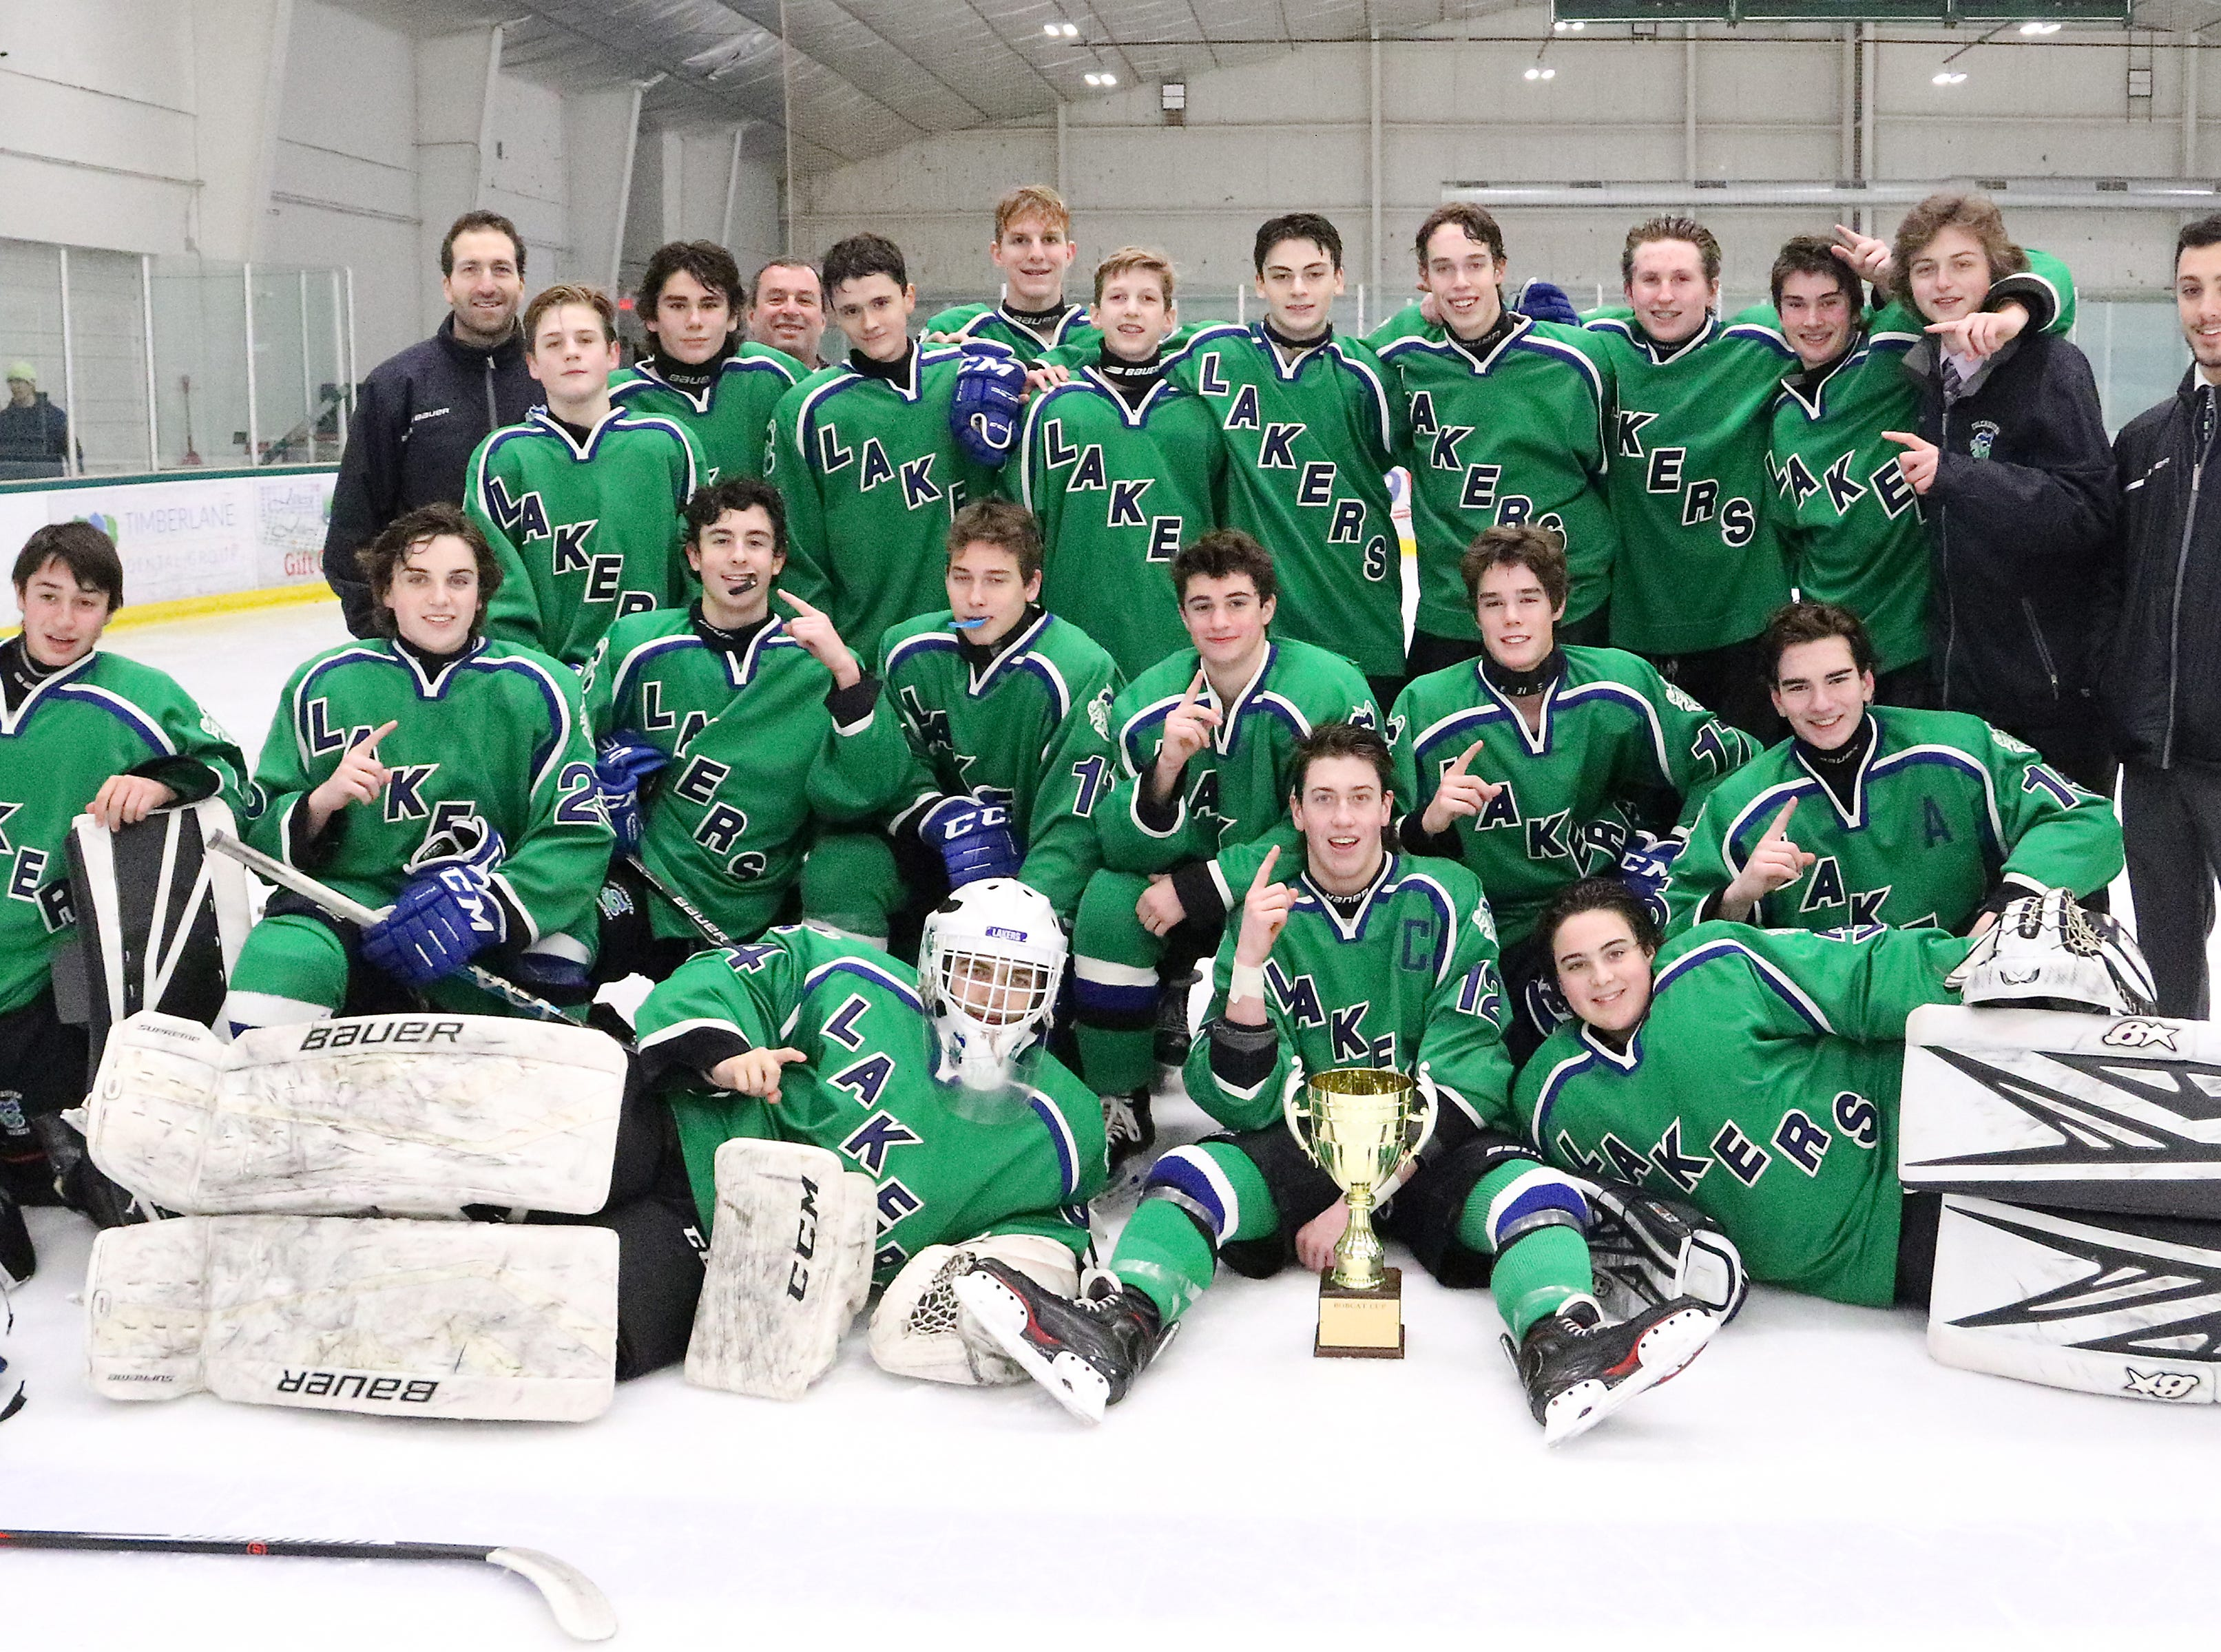 """The Colchester Lakers pose with the """"BAHA Cup"""" after defeating Burlington 6-0 in the 2nd annual game featuring former BAHA youth hockey teammates who are now high school rivals."""